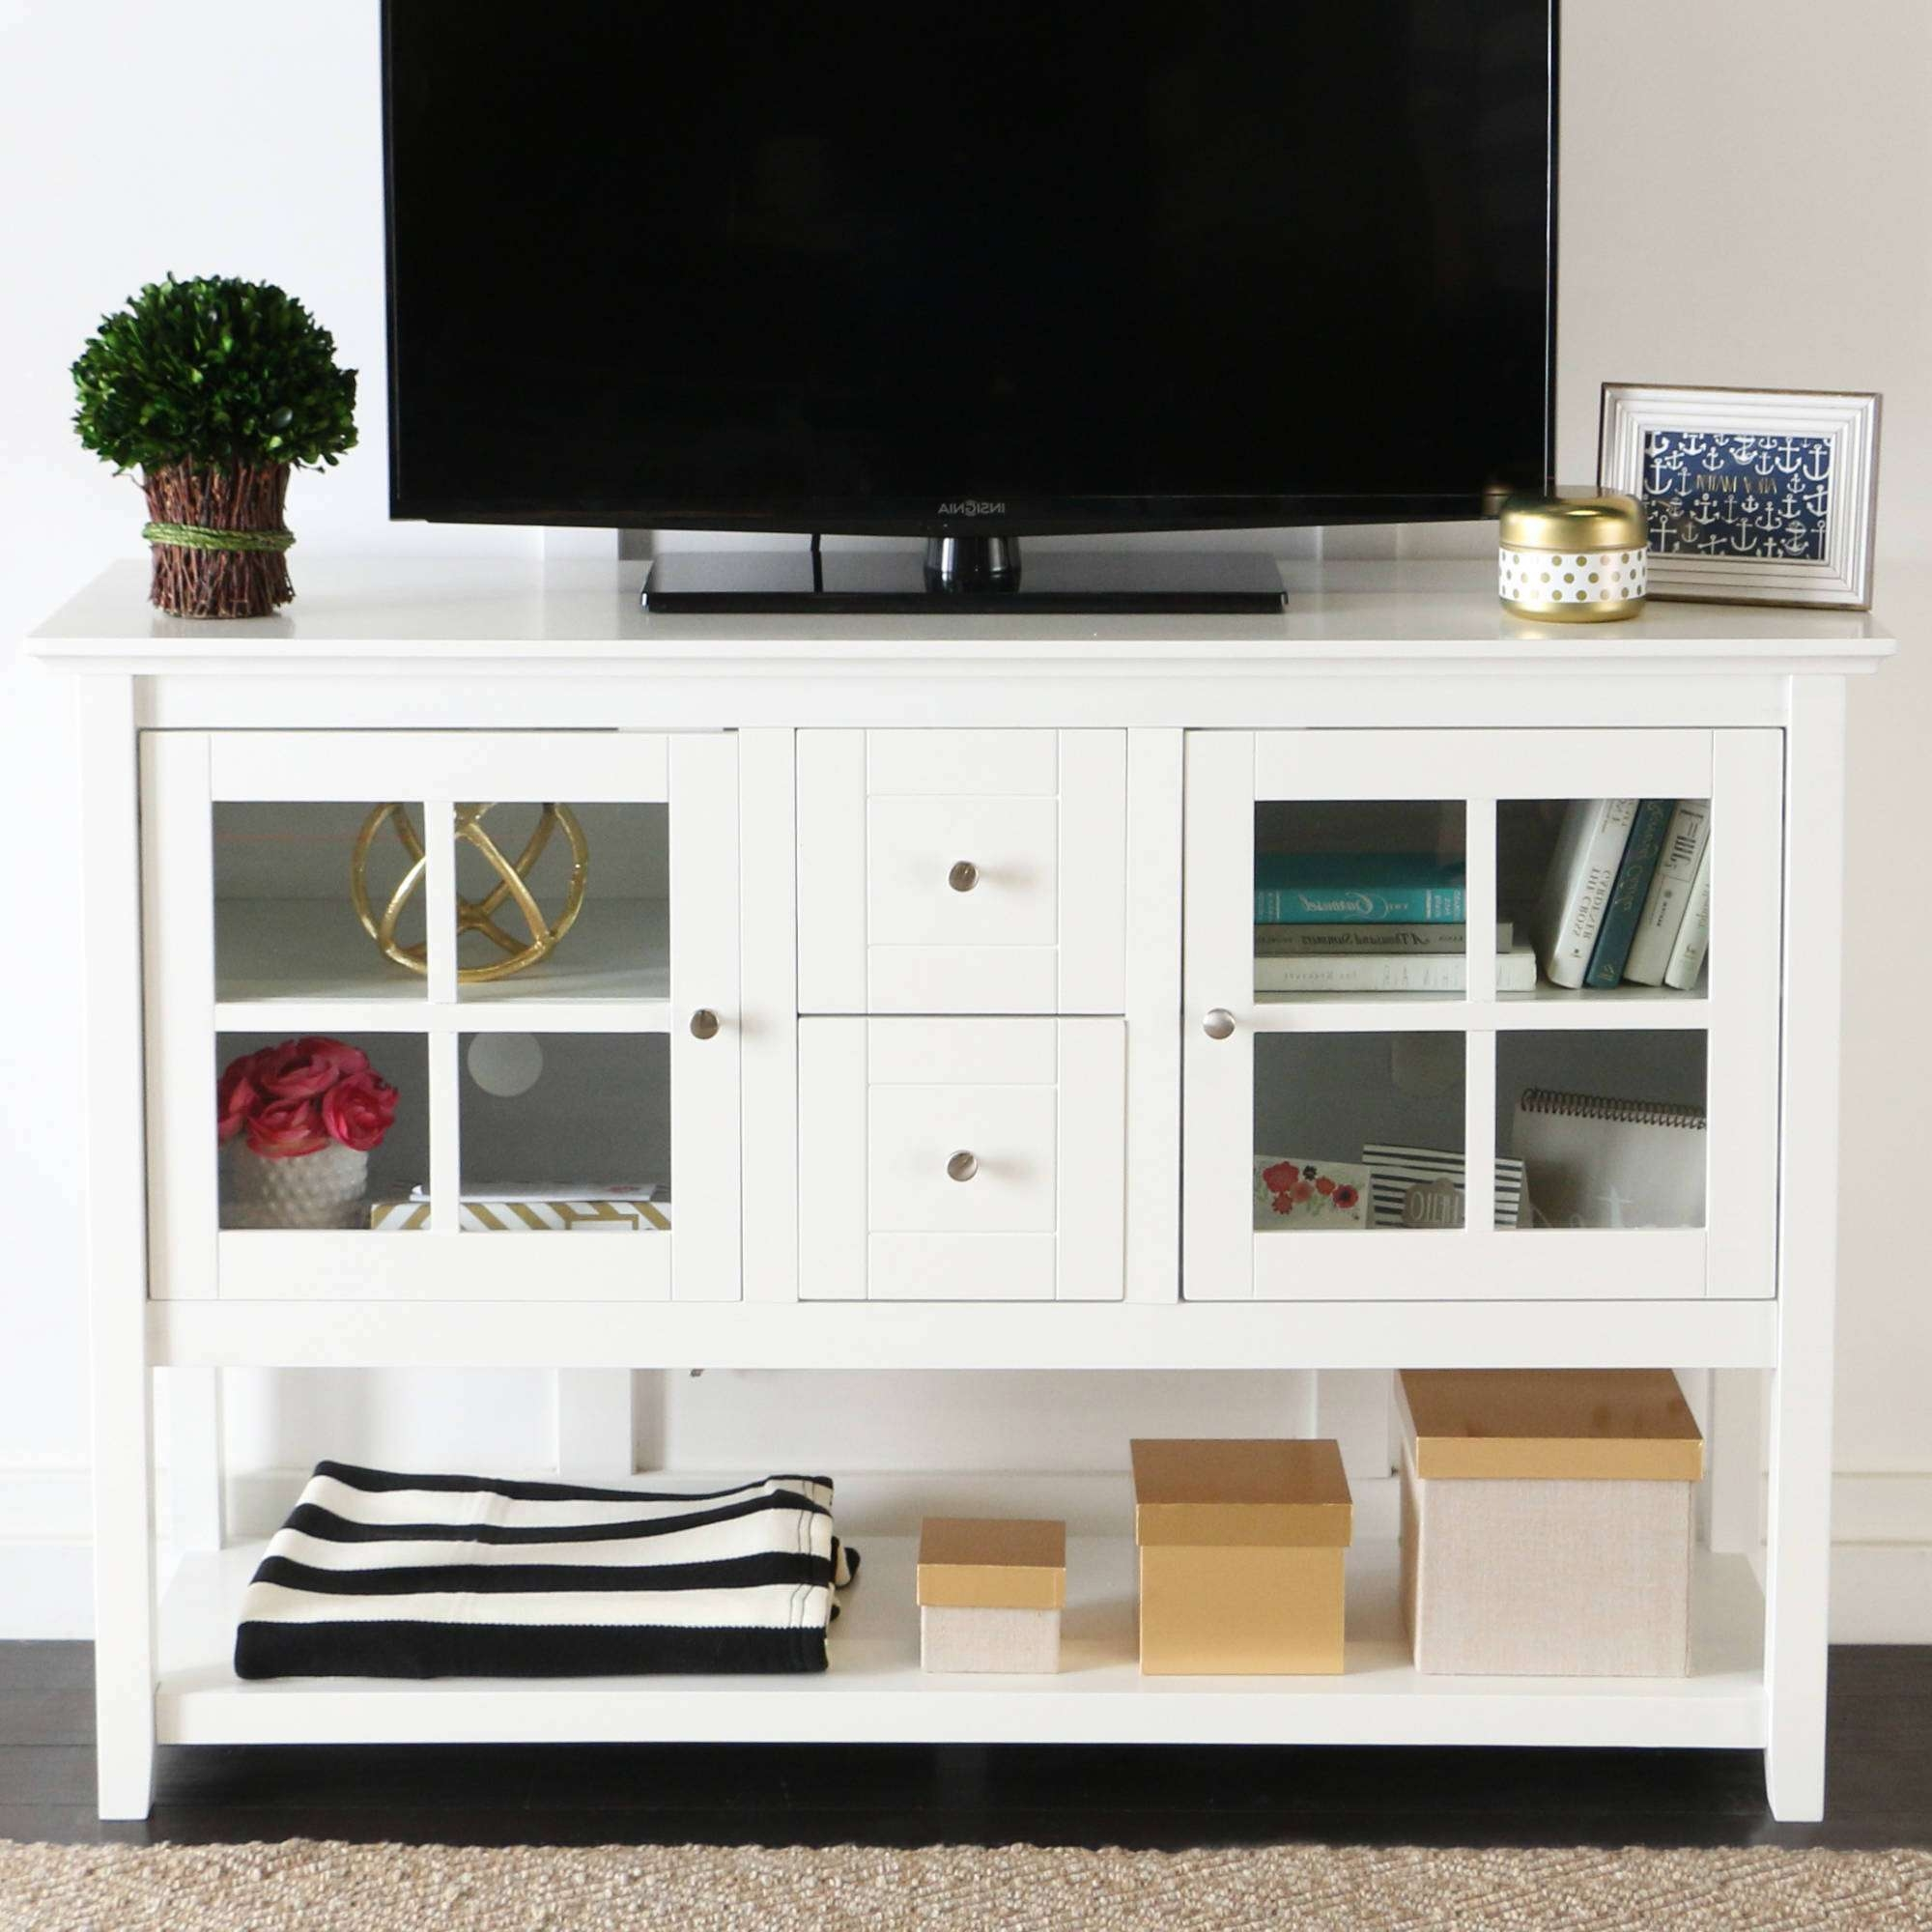 Console Tables : Extra Long Tv Stand Awe Images About Stylish With Regard To Slimline Tv Cabinets (View 8 of 20)